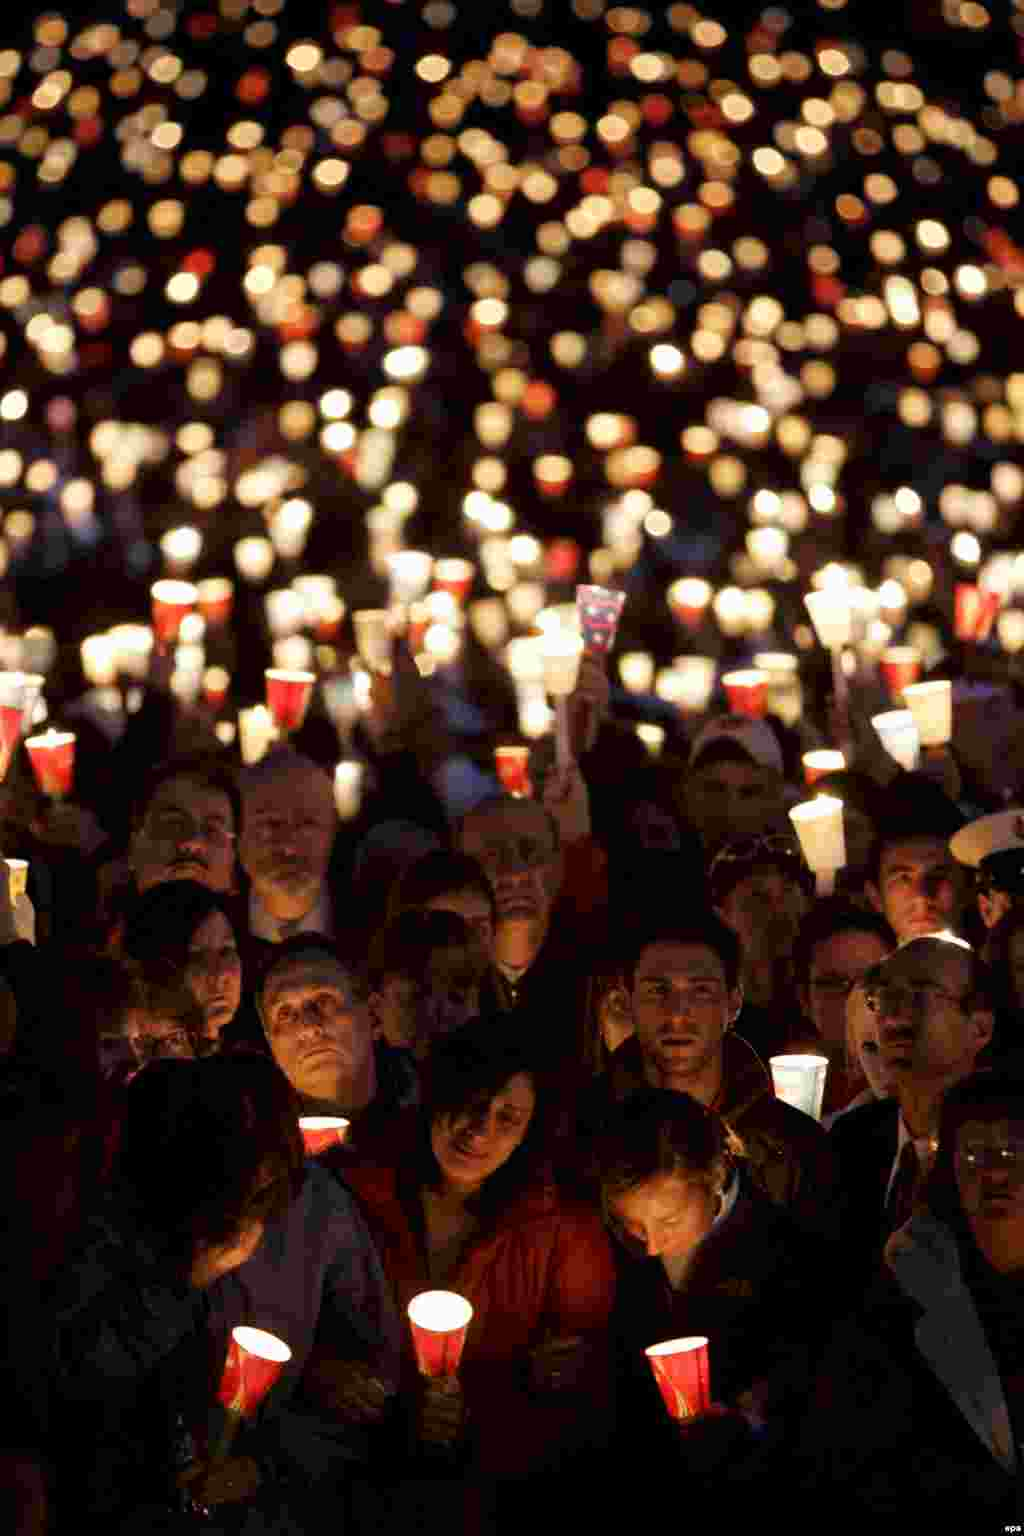 The second largest mass shooting on record was at Virginia Tech University on April 17, 2007. The attacker, a 23-year-old student at the university, Seung-Hui Cho, killed 32 students and left 25 injured in two separate attacks: one in classrooms, the other in a dormitory. He then committed suicide at the scene. Virginia Tech students are seen here during a candlelight vigil for the victims.